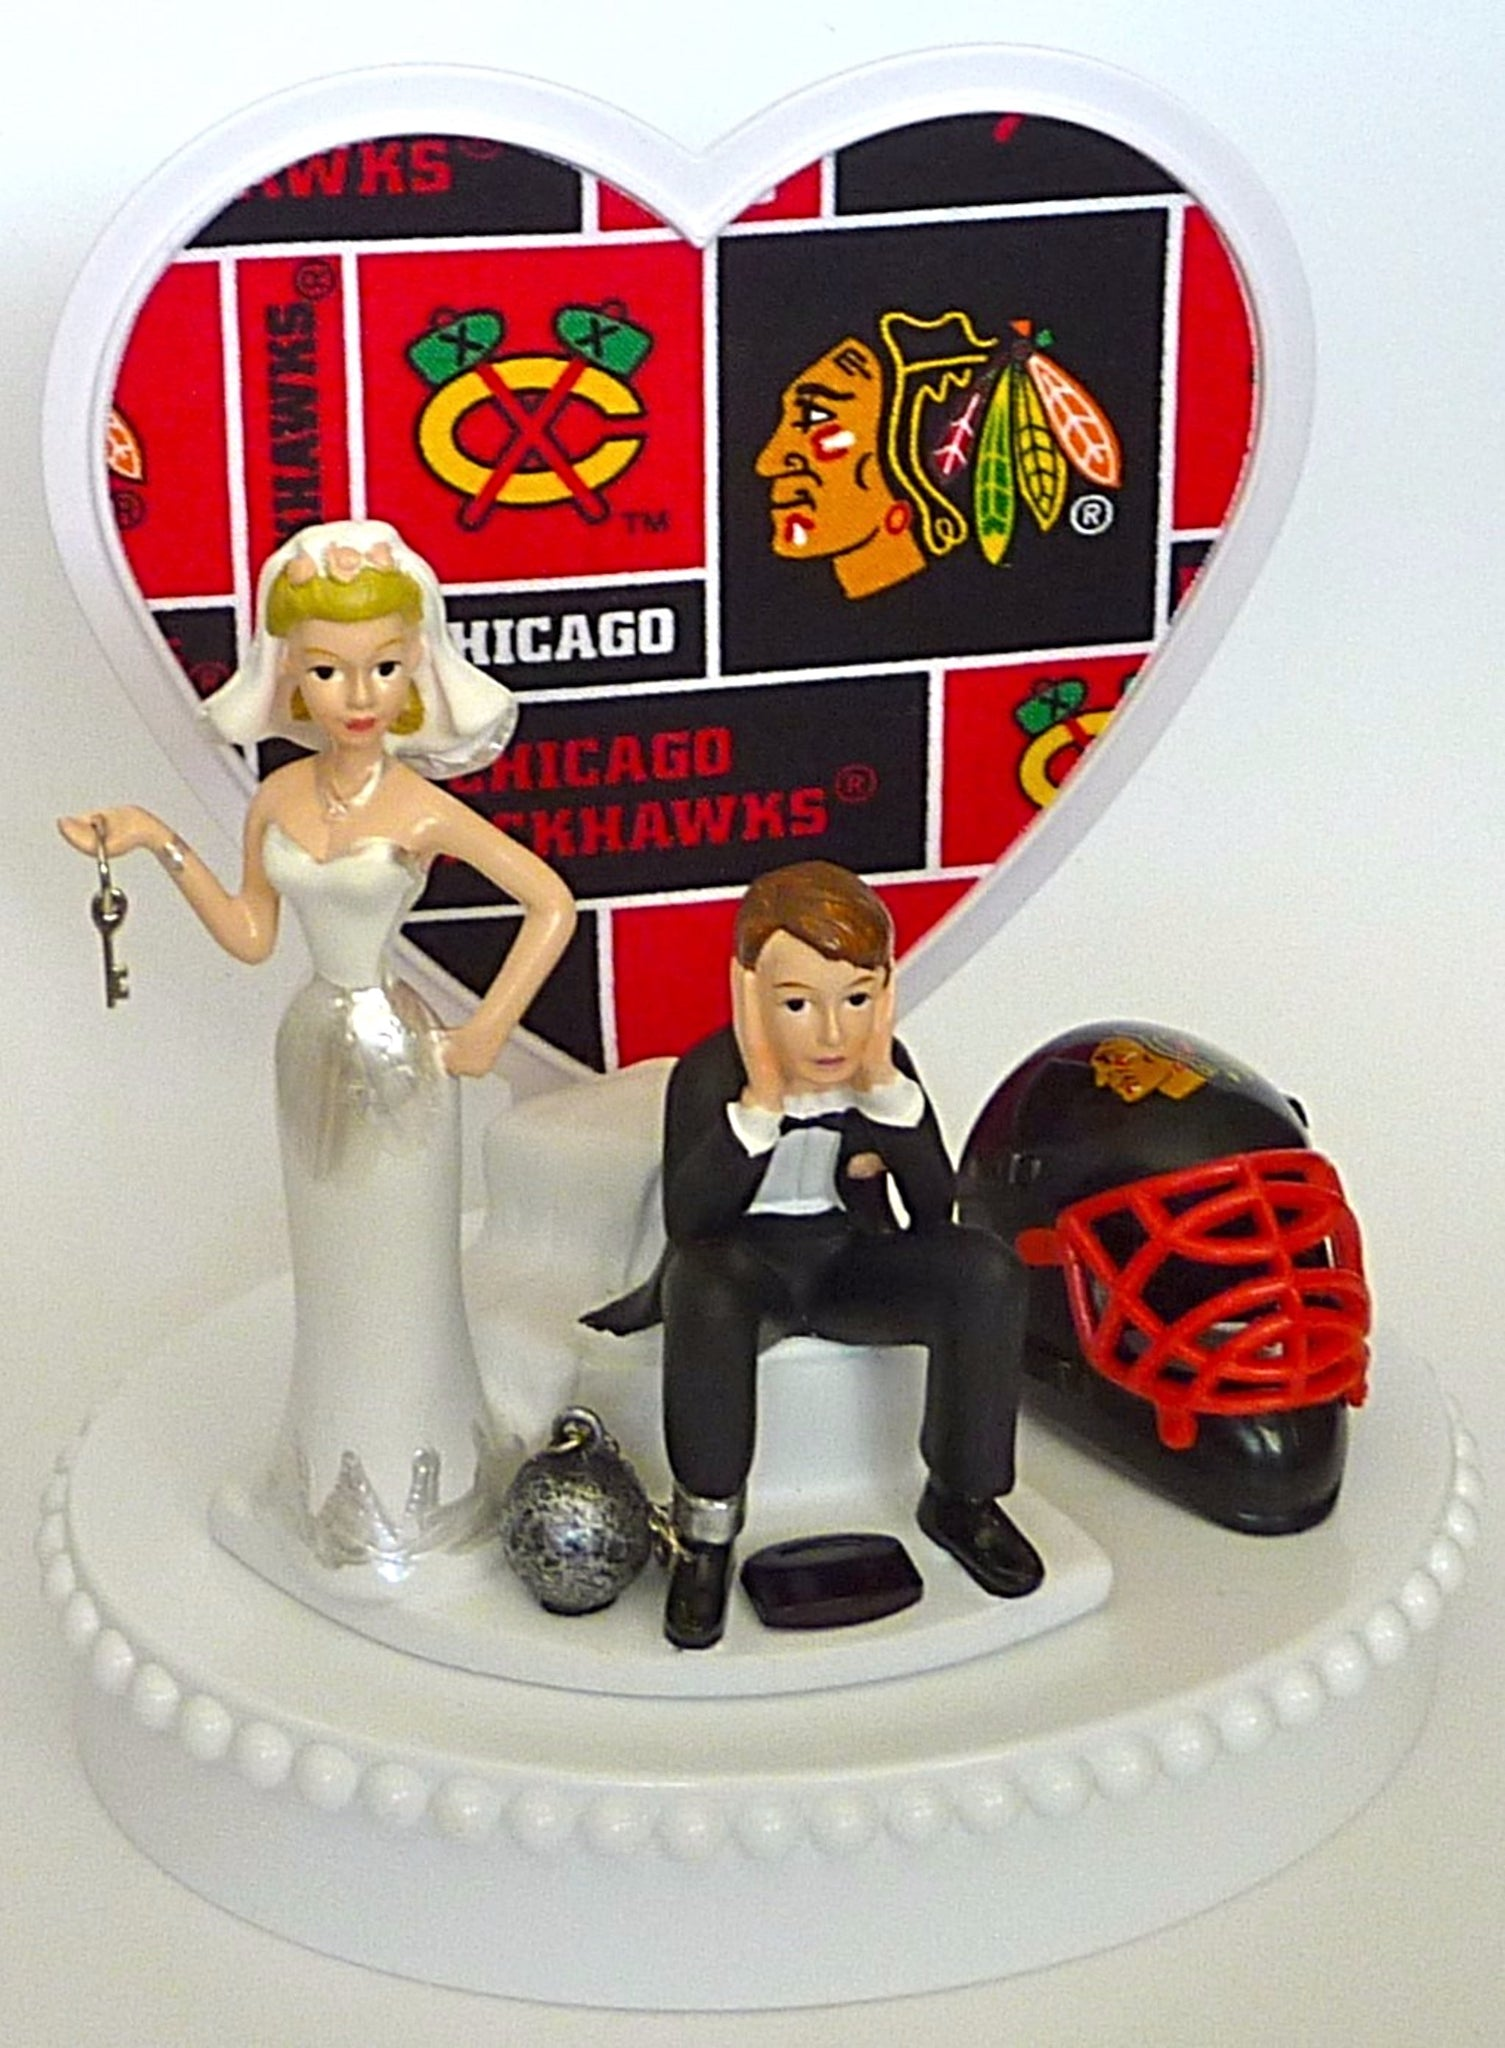 Funny hockey wedding cake topper Chicago Blackhawks FunWeddingThings.com